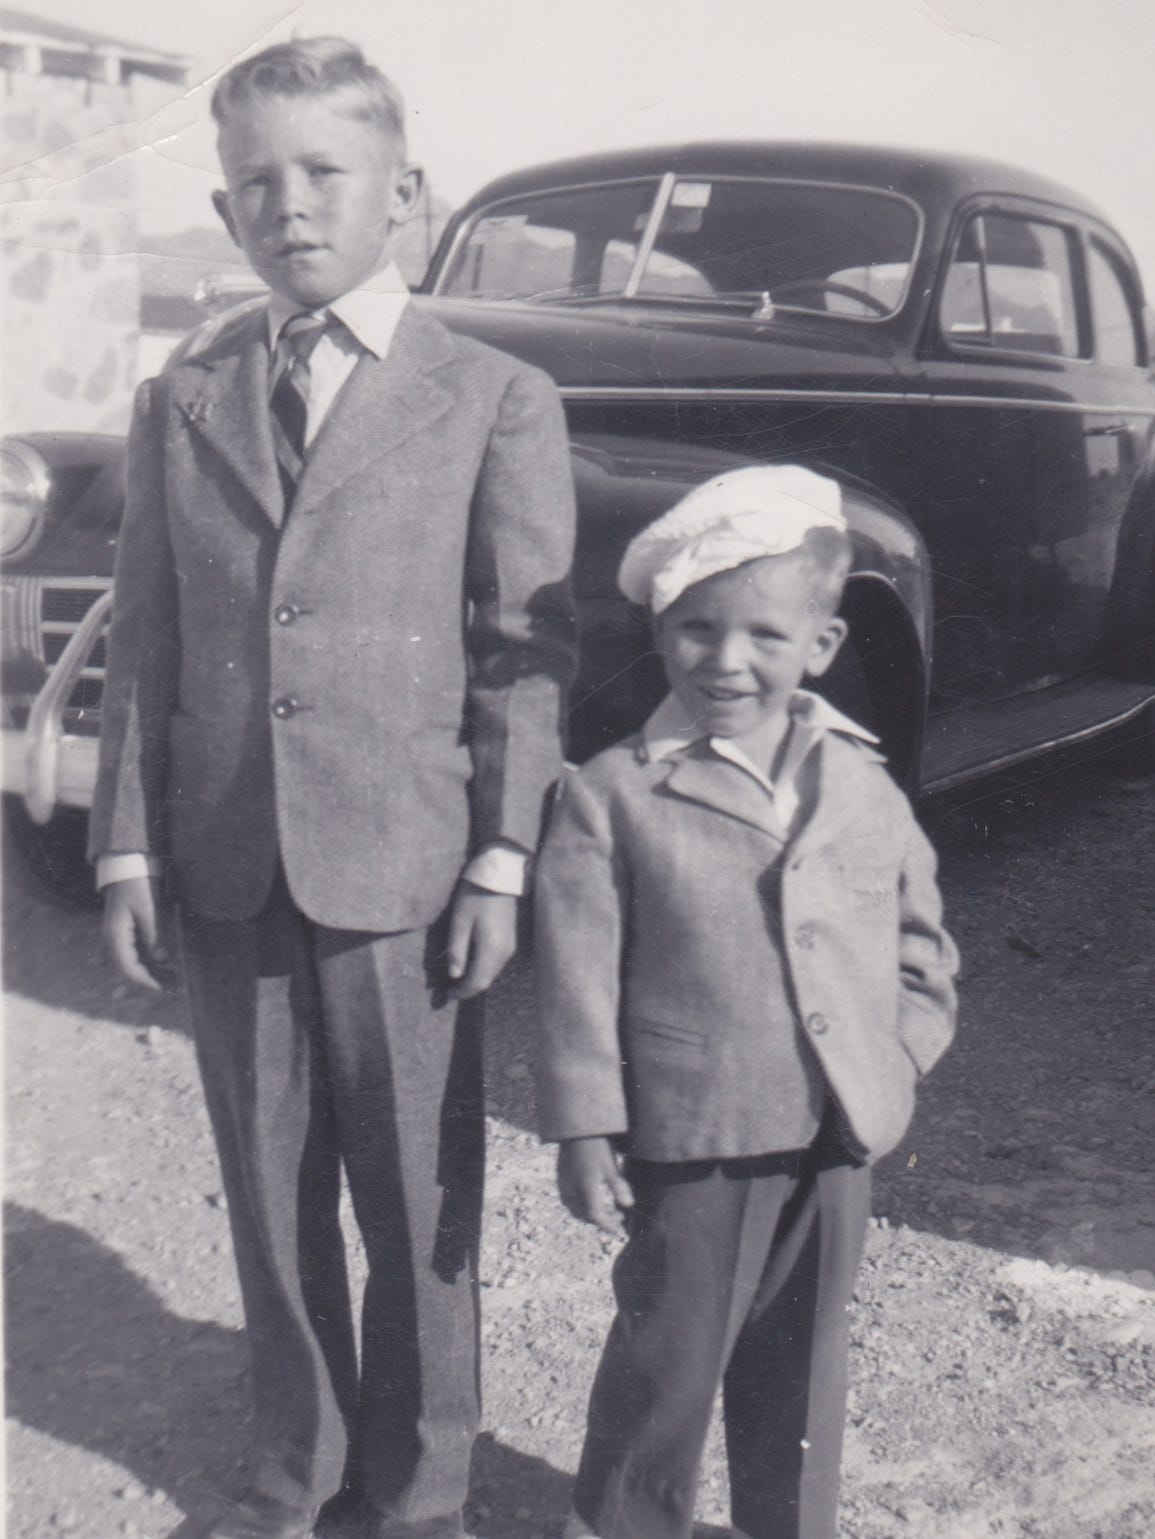 John Arthur Smith with his brother, Jimmy, in 1944